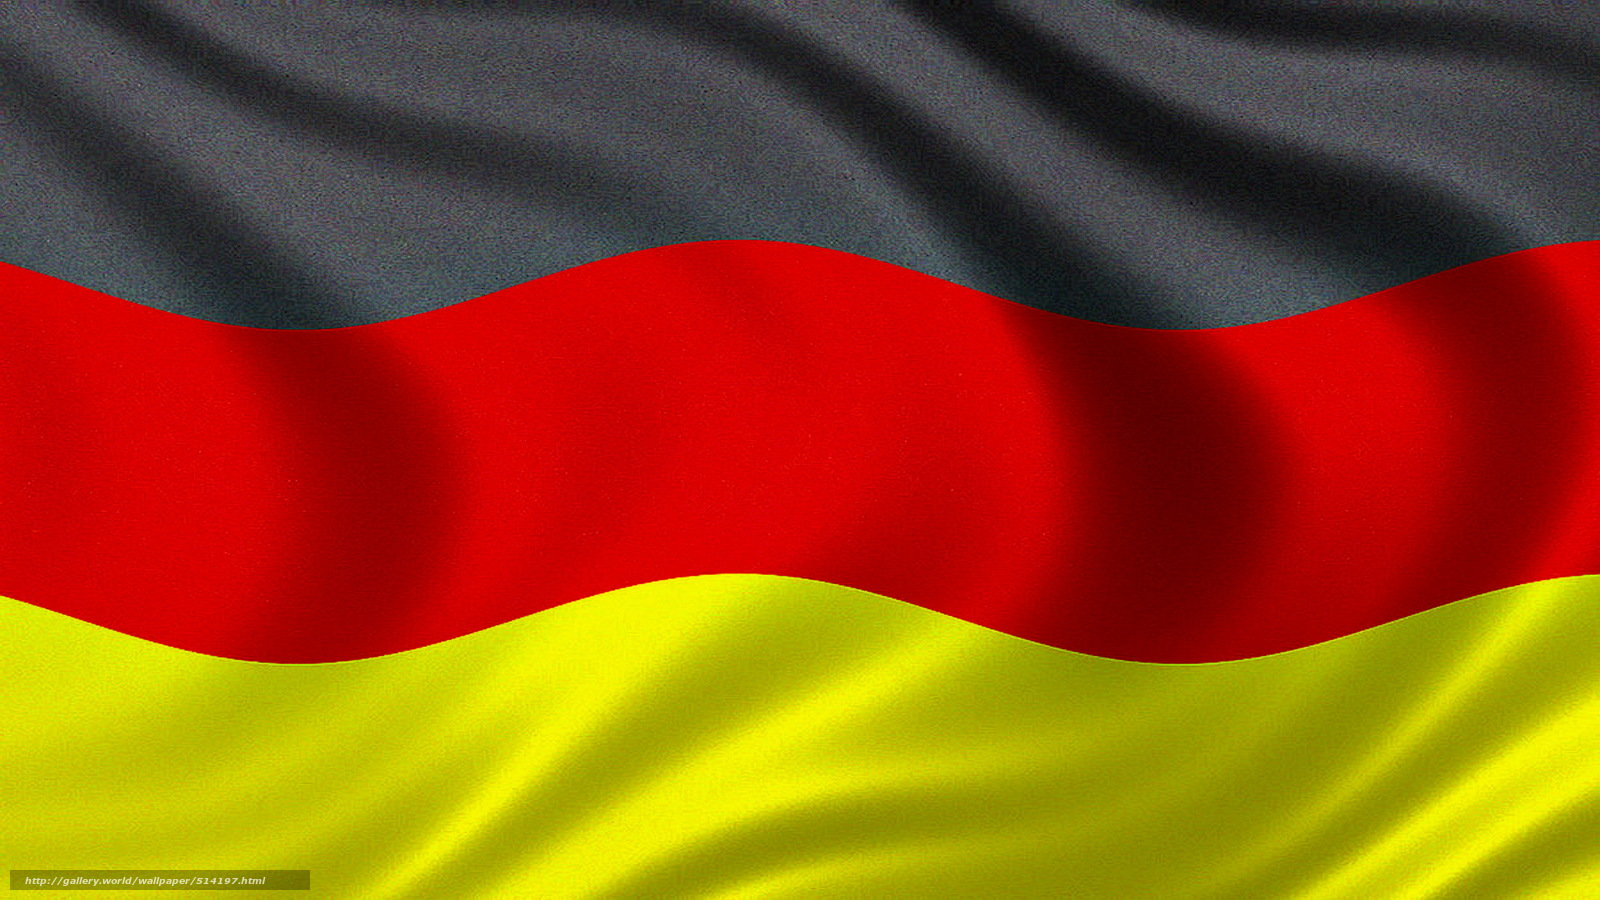 download wallpaper flag of germany german flag flag of the